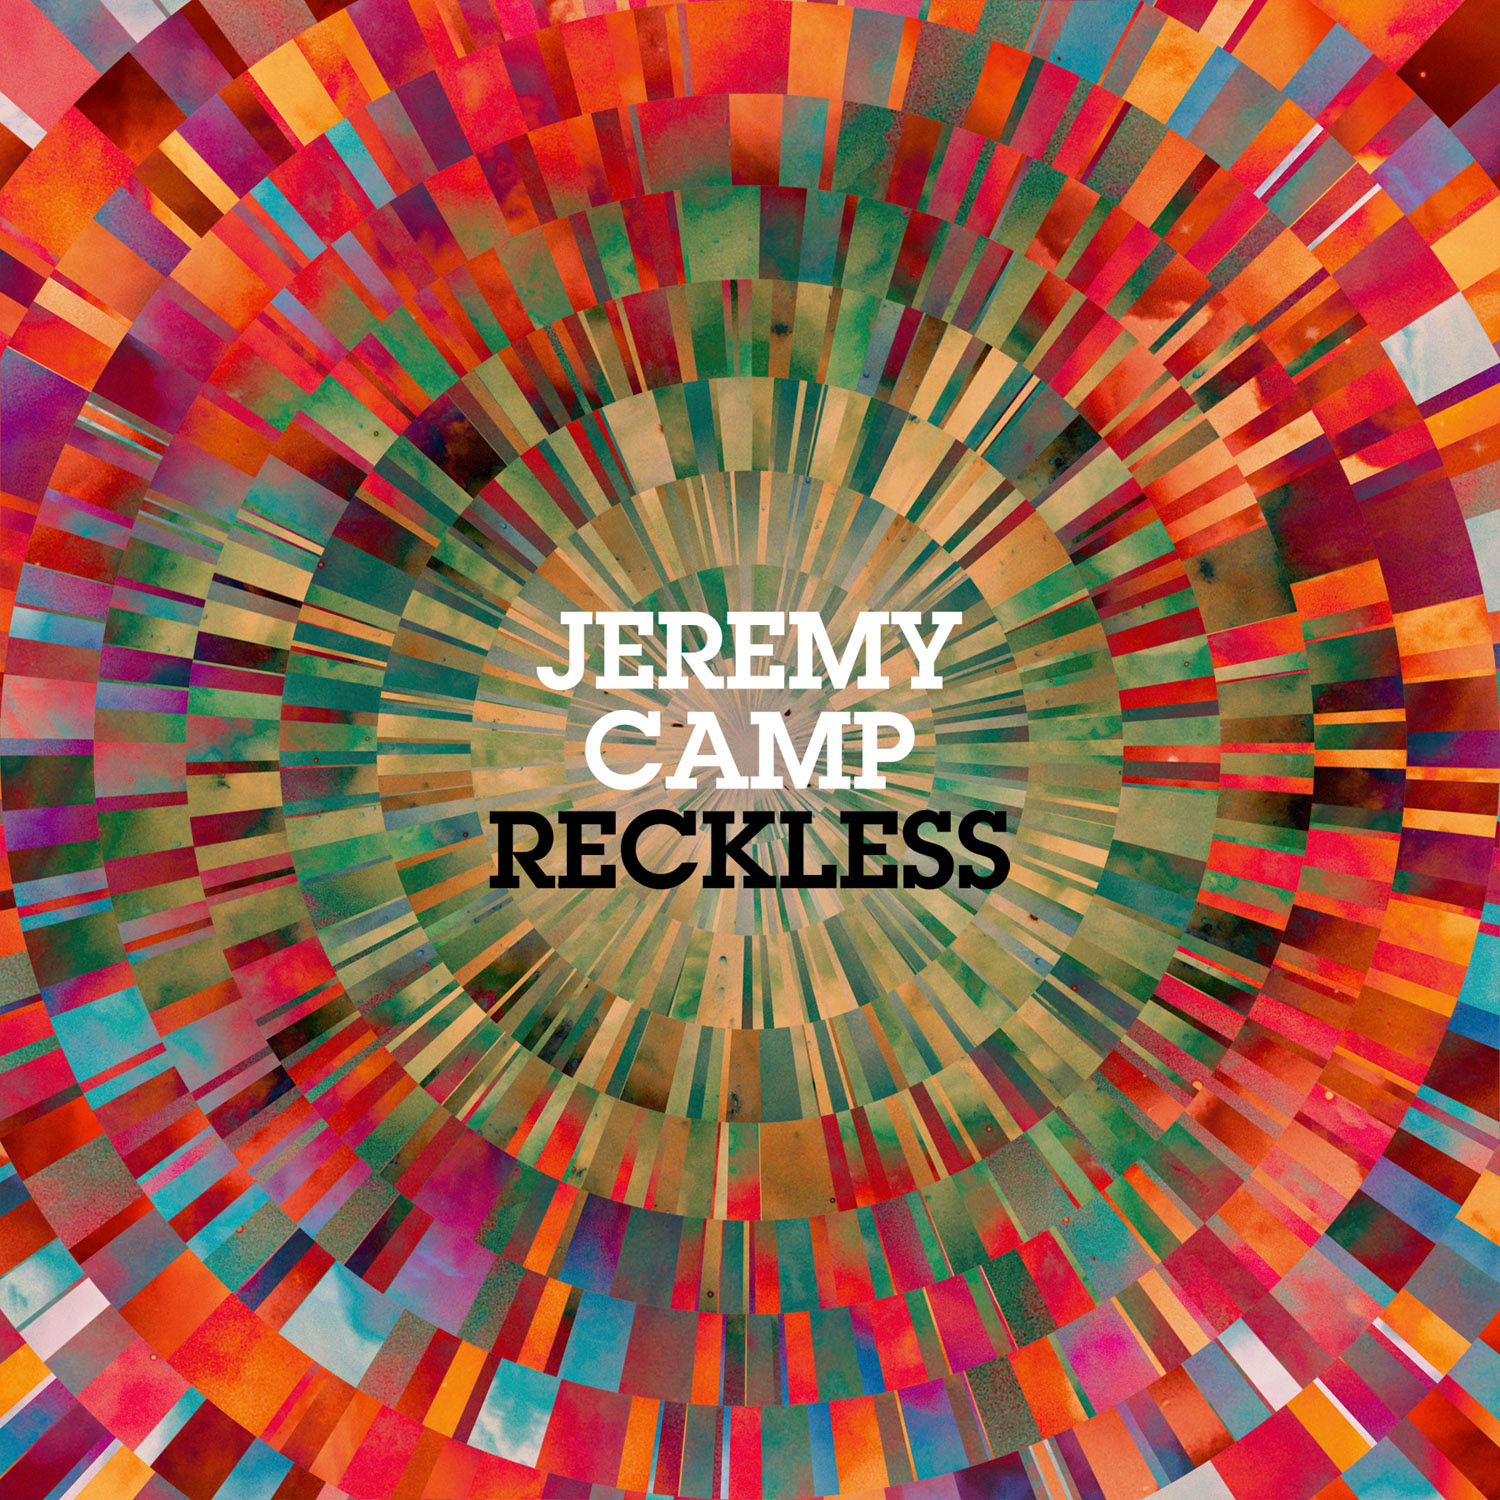 http://www.jesusfreakhideout.com/cdreviews/covers/reckless.jpg